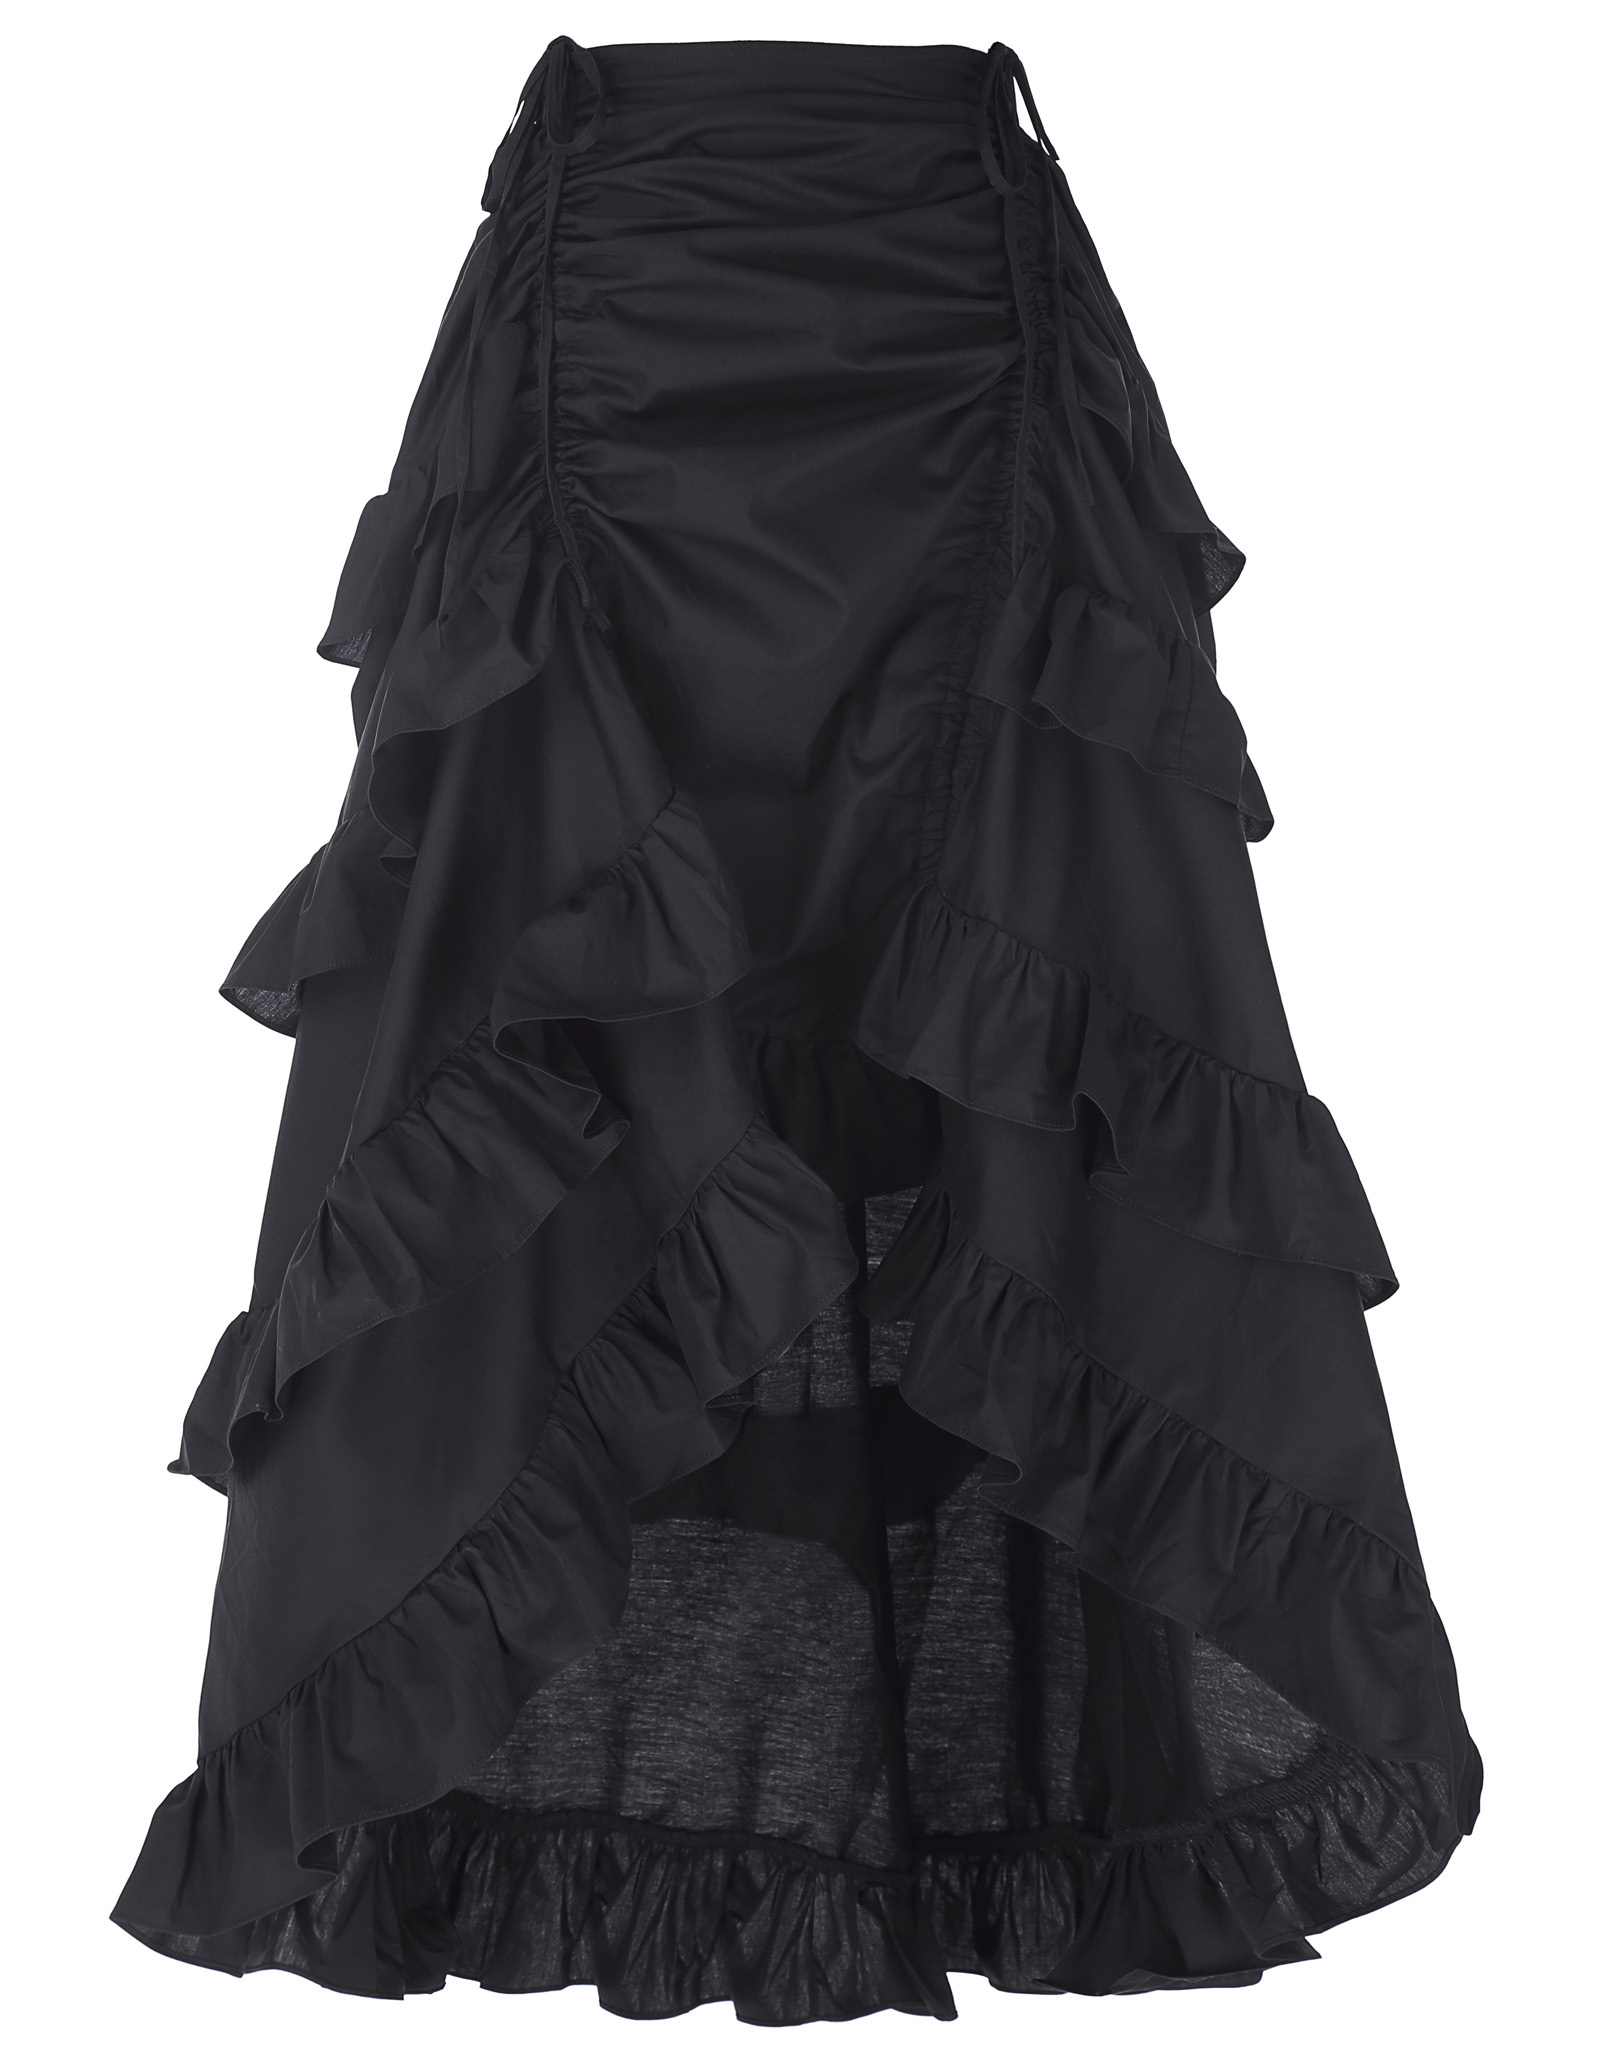 Womens Plus Size Victorian Gothic Steampunk Skirt Sexy Party Black Ruffles Vintage High Waist High Low Skirt 2018 New Style